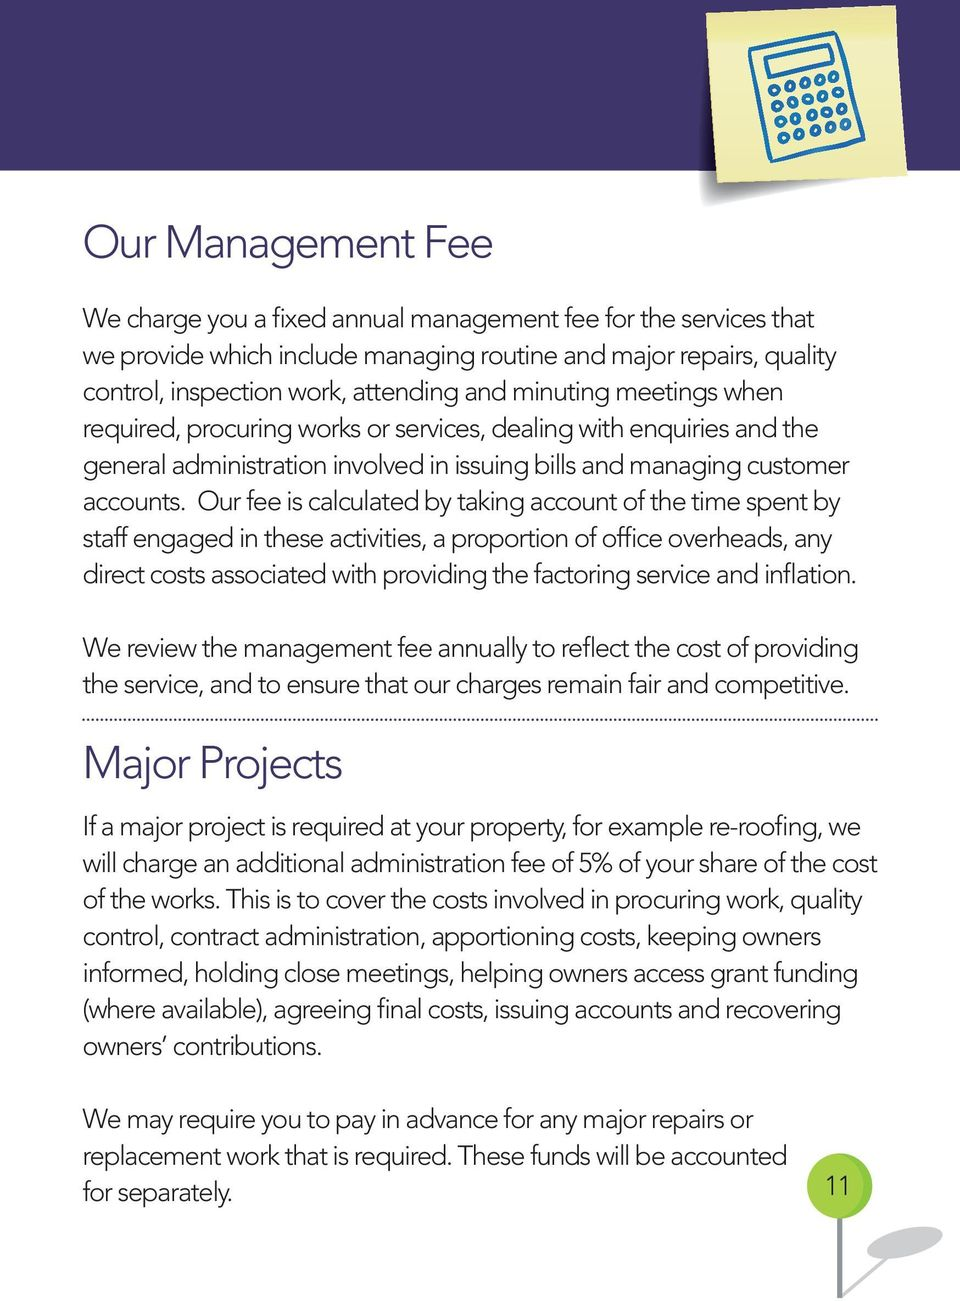 Our fee is calculated by taking account of the time spent by staff engaged in these activities, a proportion of office overheads, any direct costs associated with providing the factoring service and